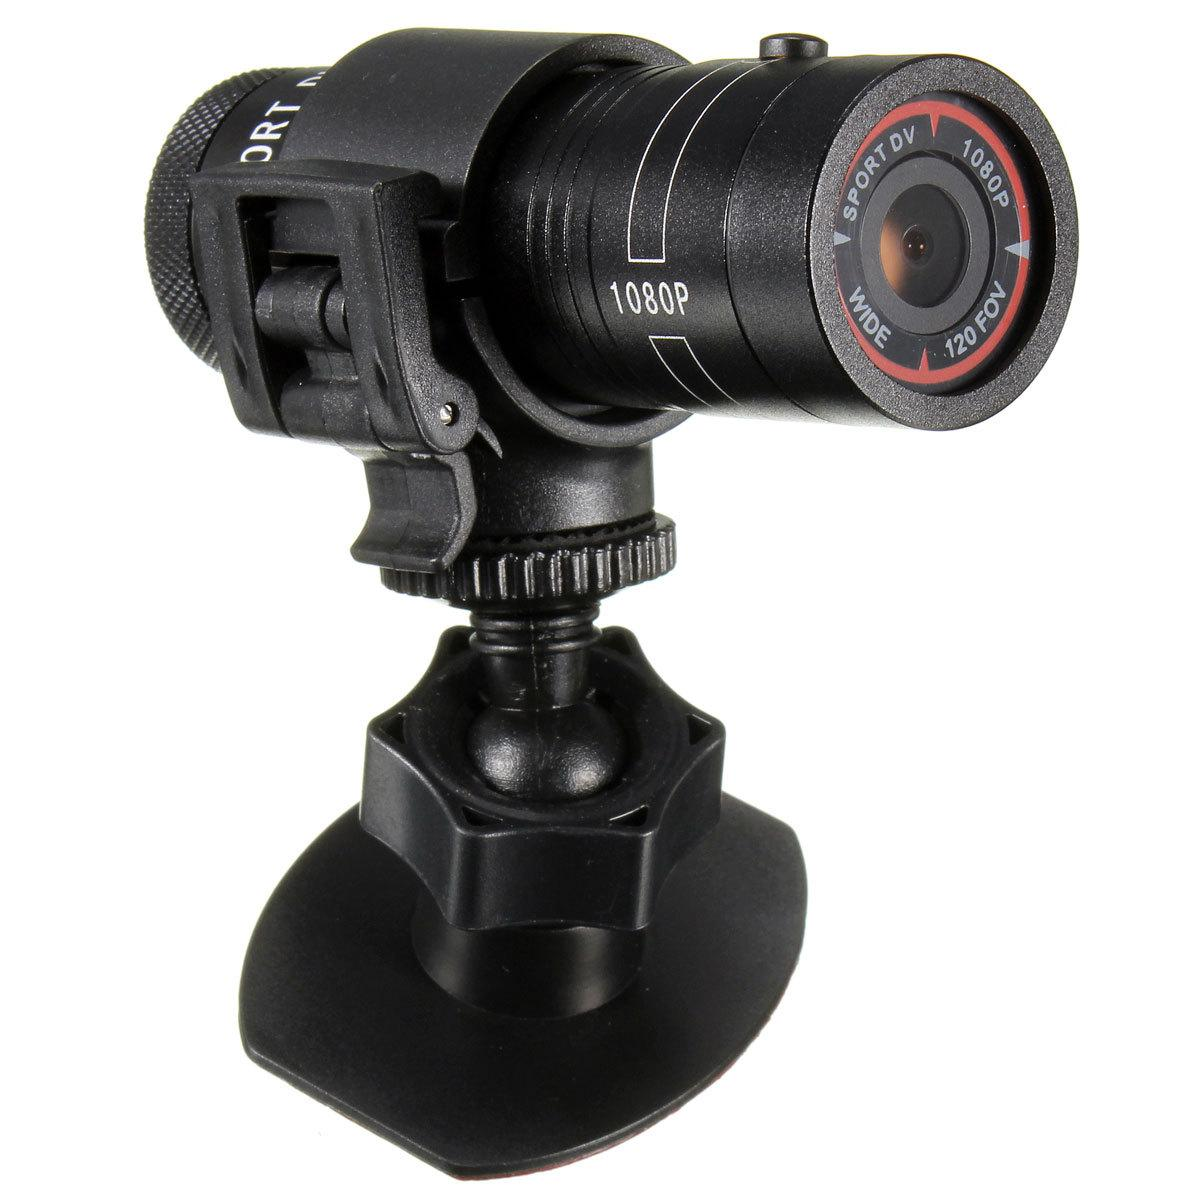 Full Hd 1080p Round Sports Camera For Bicycle Motor Cycle